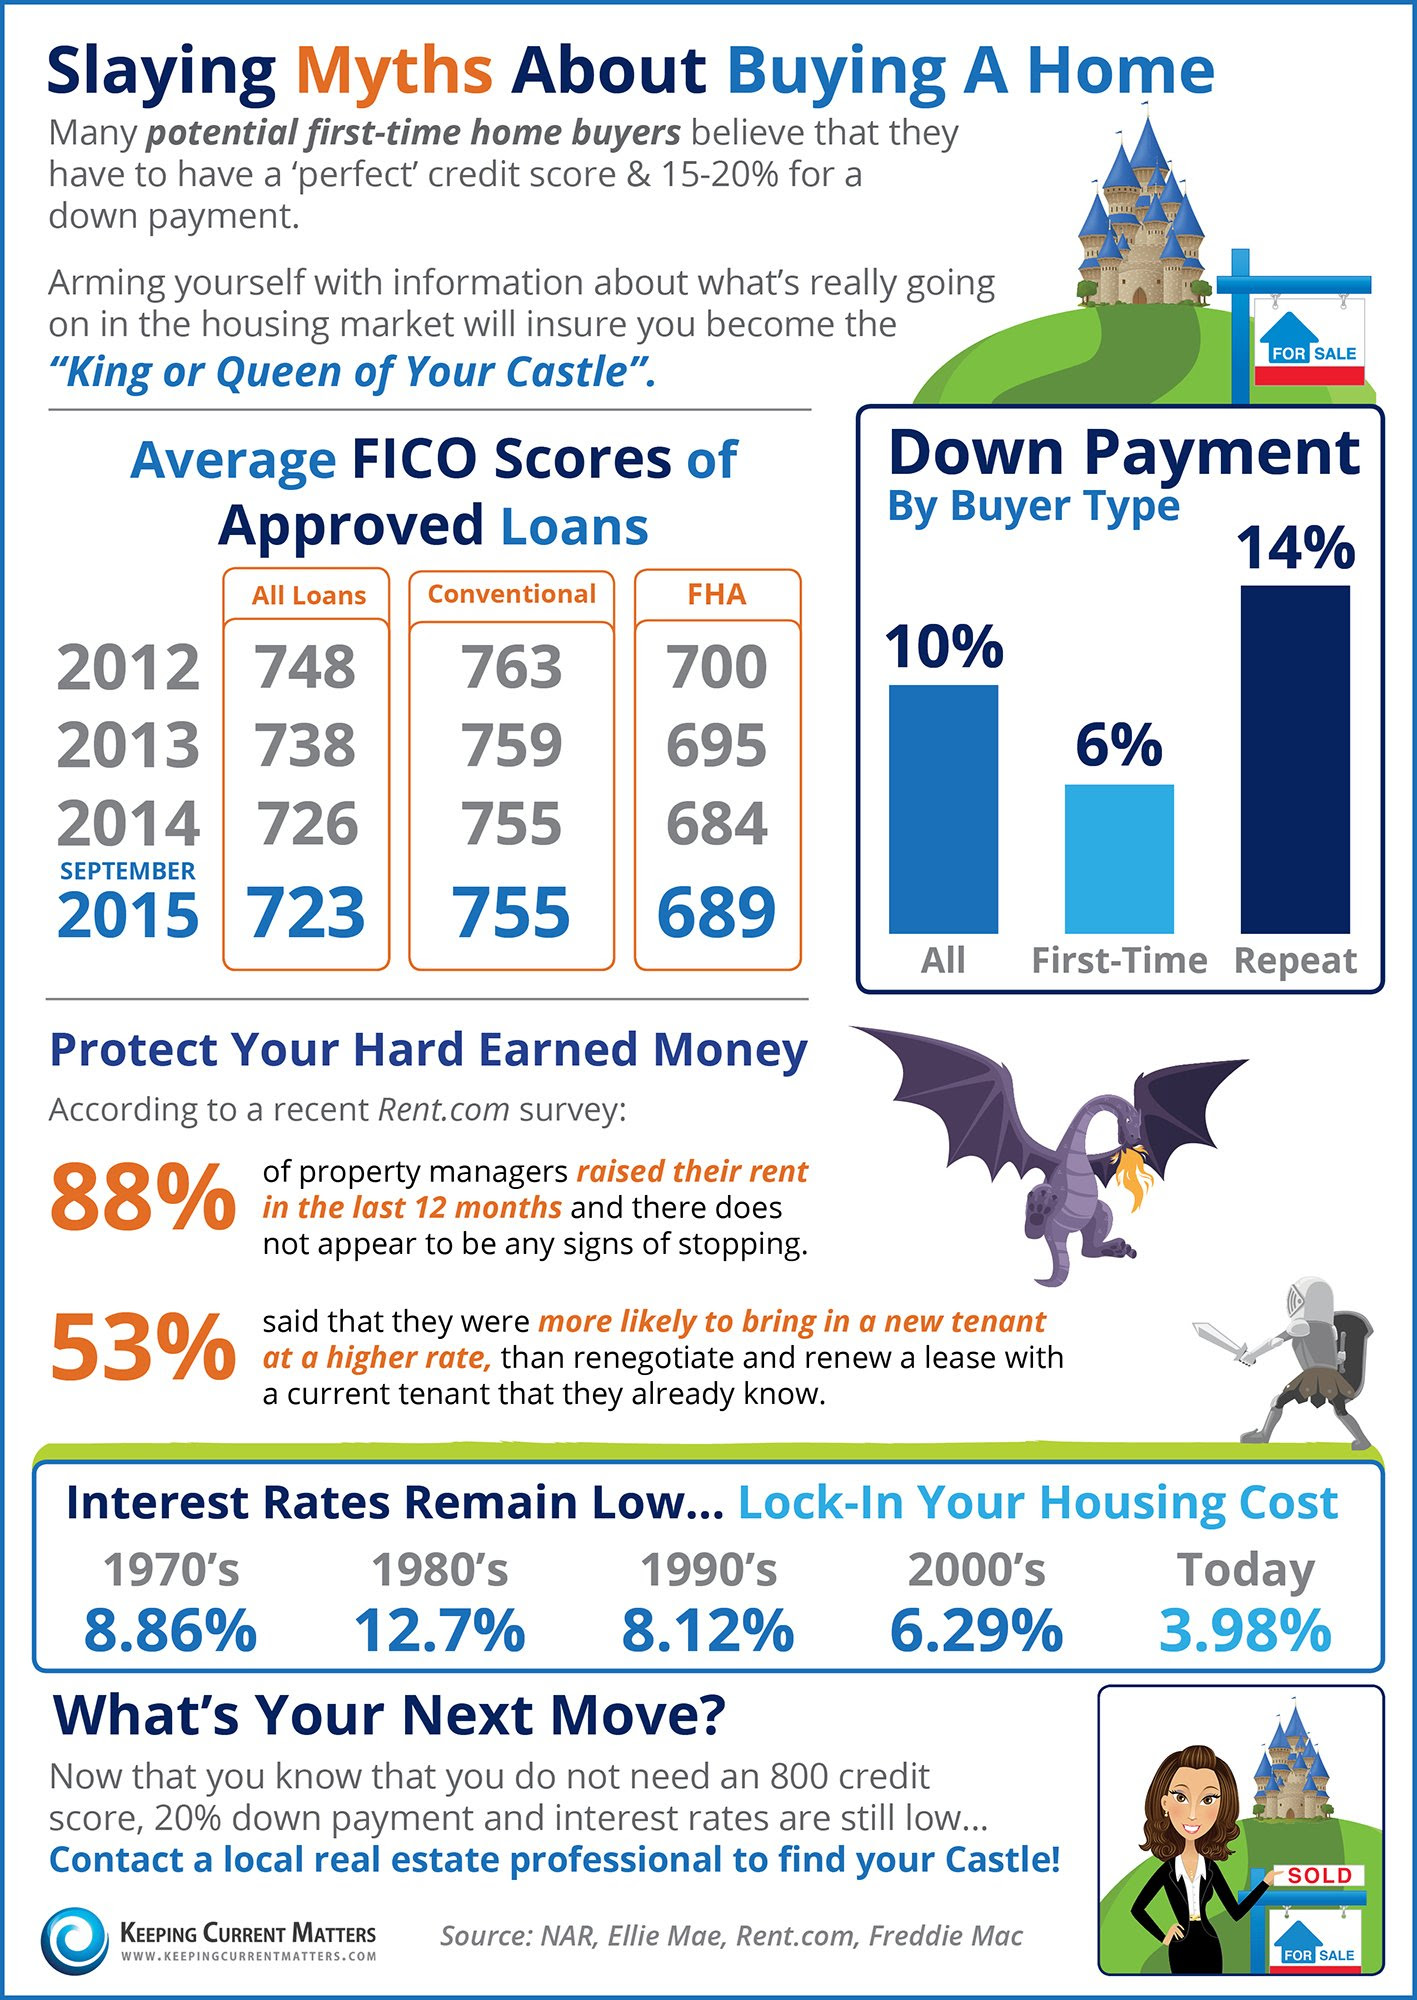 Slaying Myths About Buying A Home [INFOGRAPHIC] | Keeping Current Matters